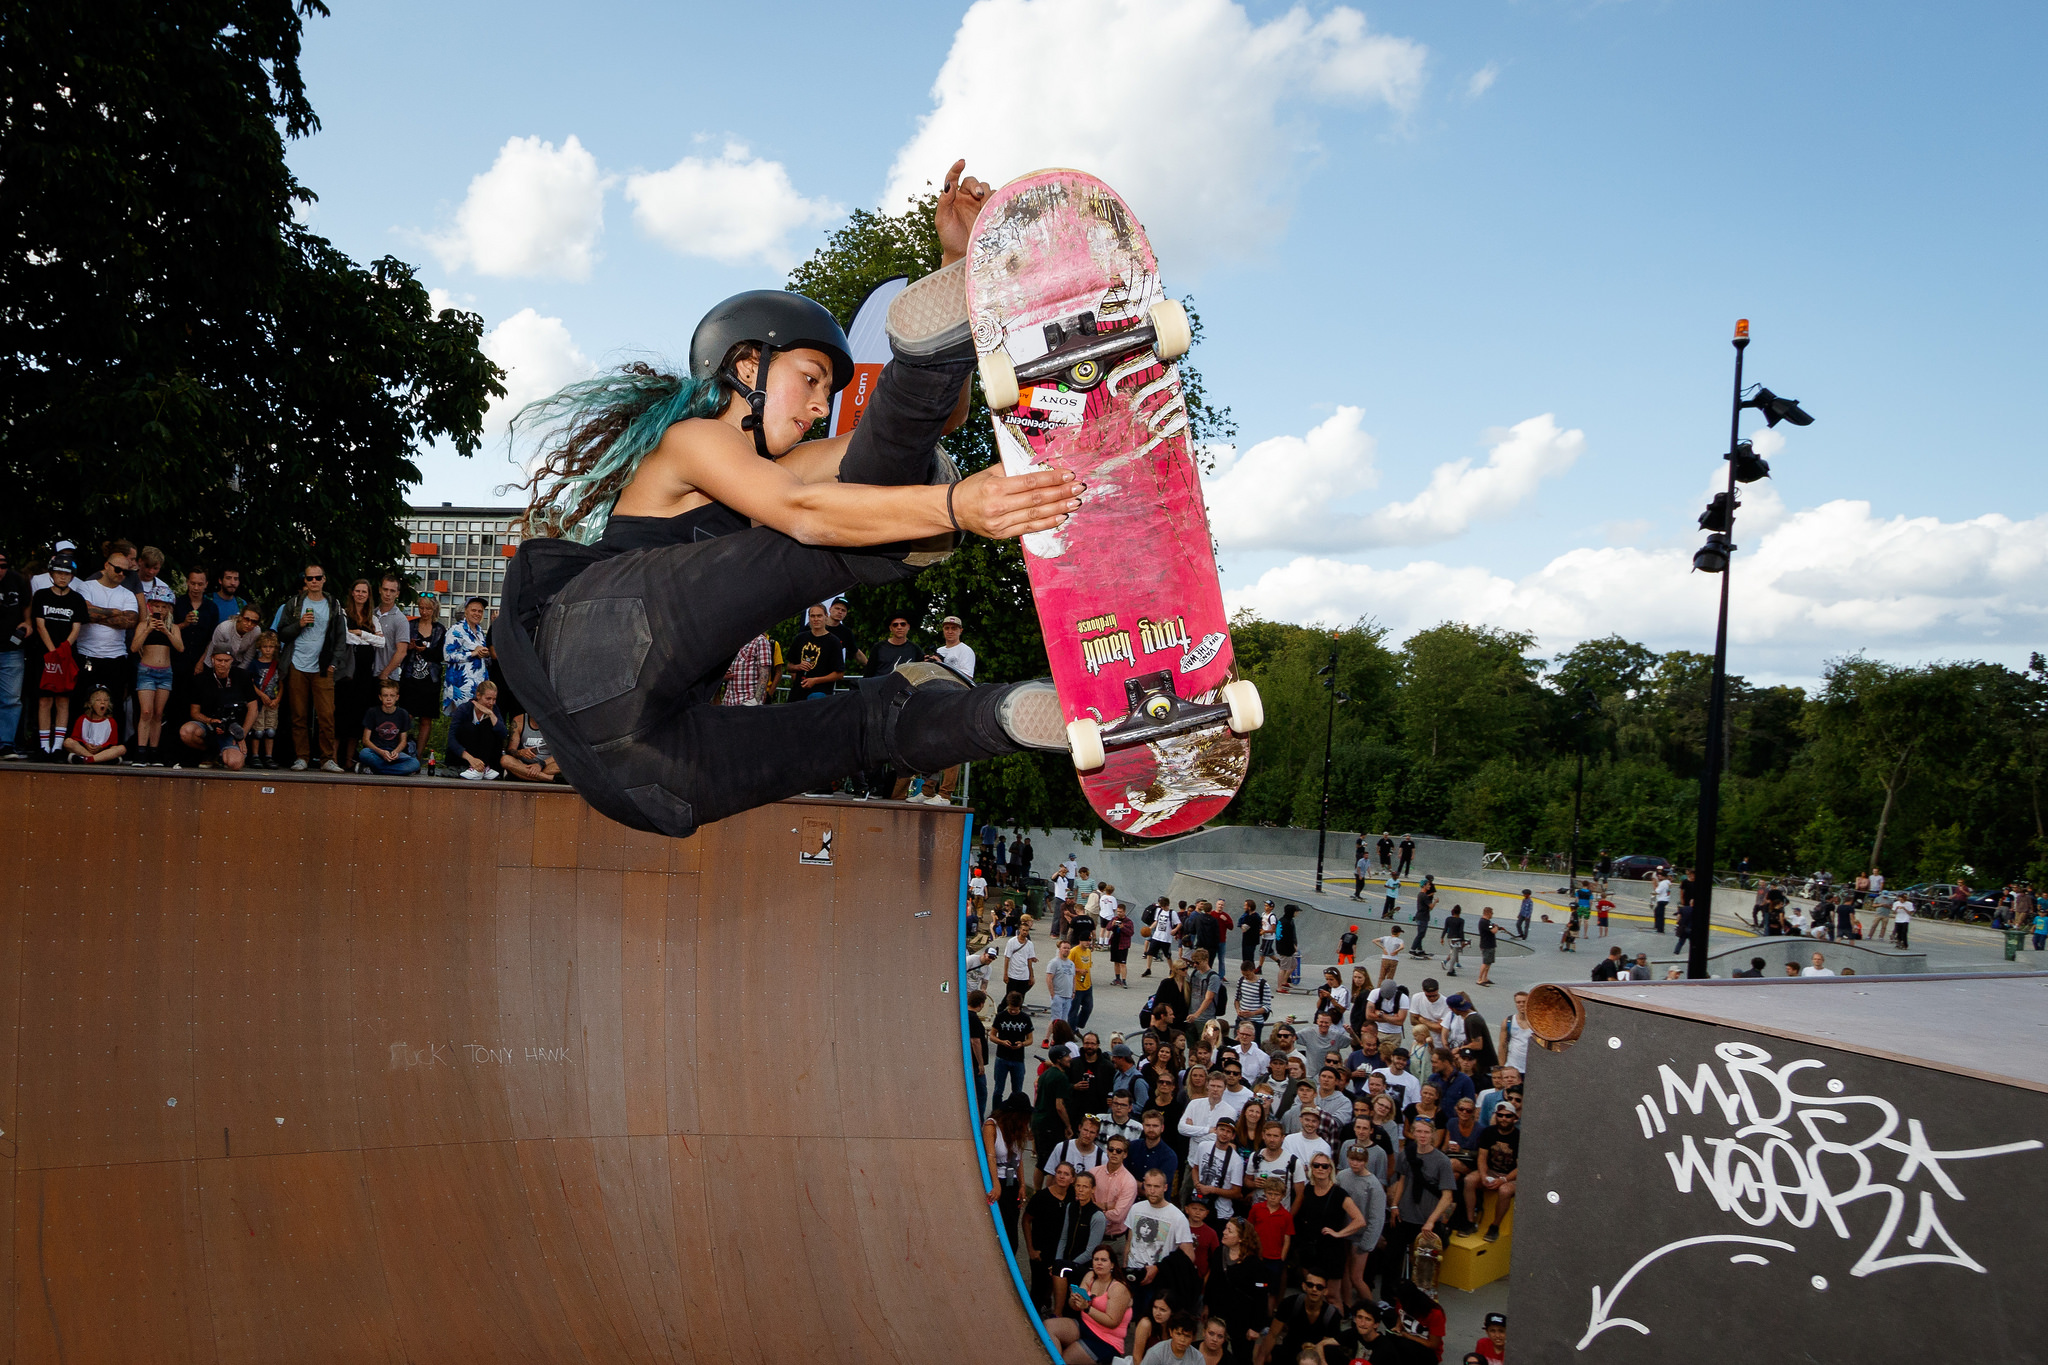 8a2fdf8424 Vans Partners with Women Skateboarders to Change the Male-Dominated Sport